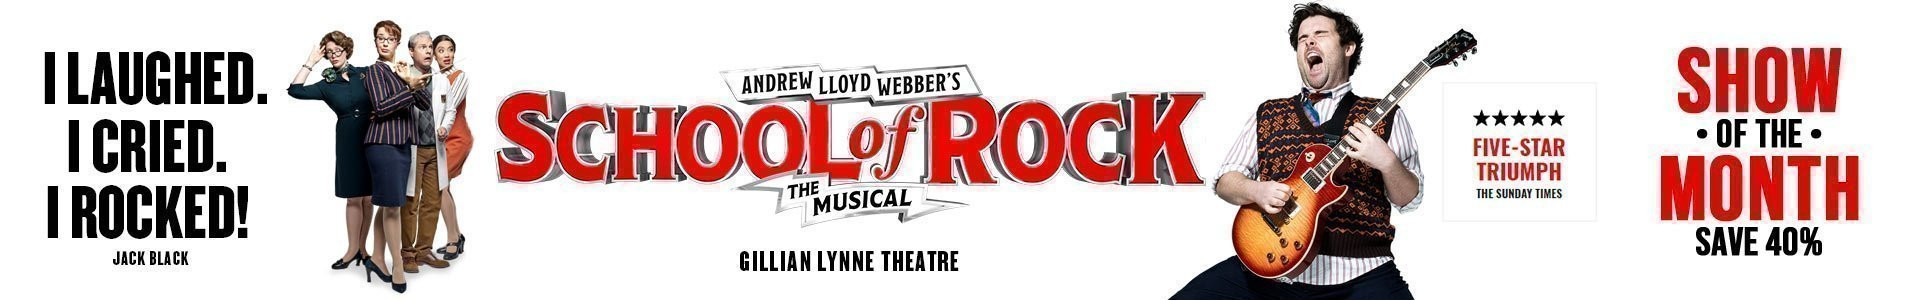 School of Rock - Show of the Month - Cheap Tickets